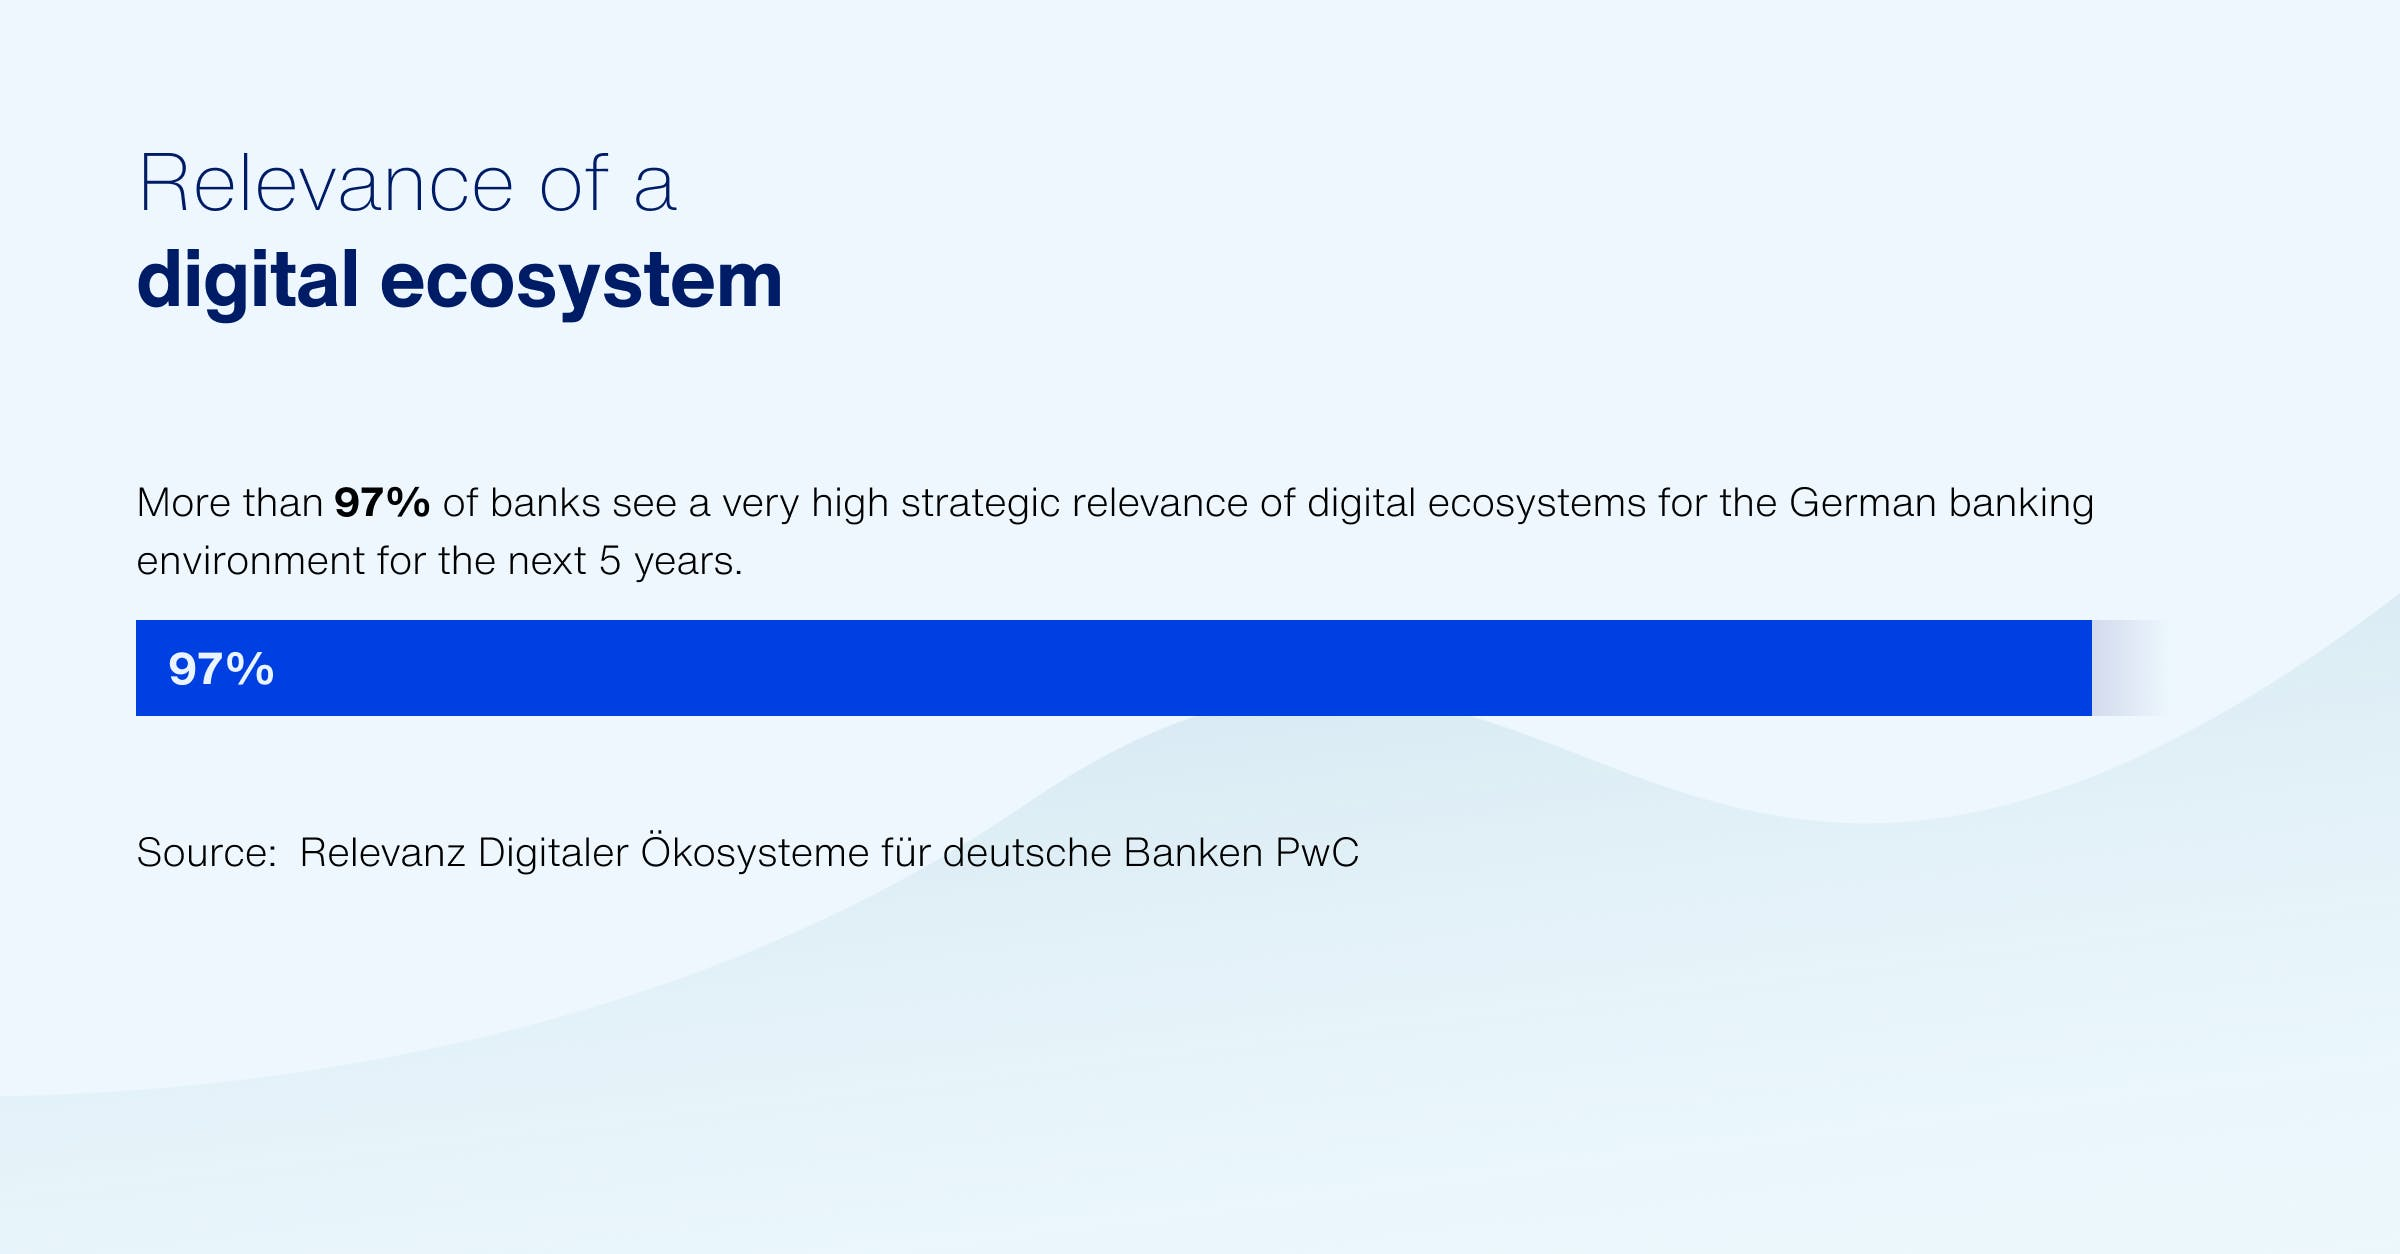 Relevance of a digital ecosystem